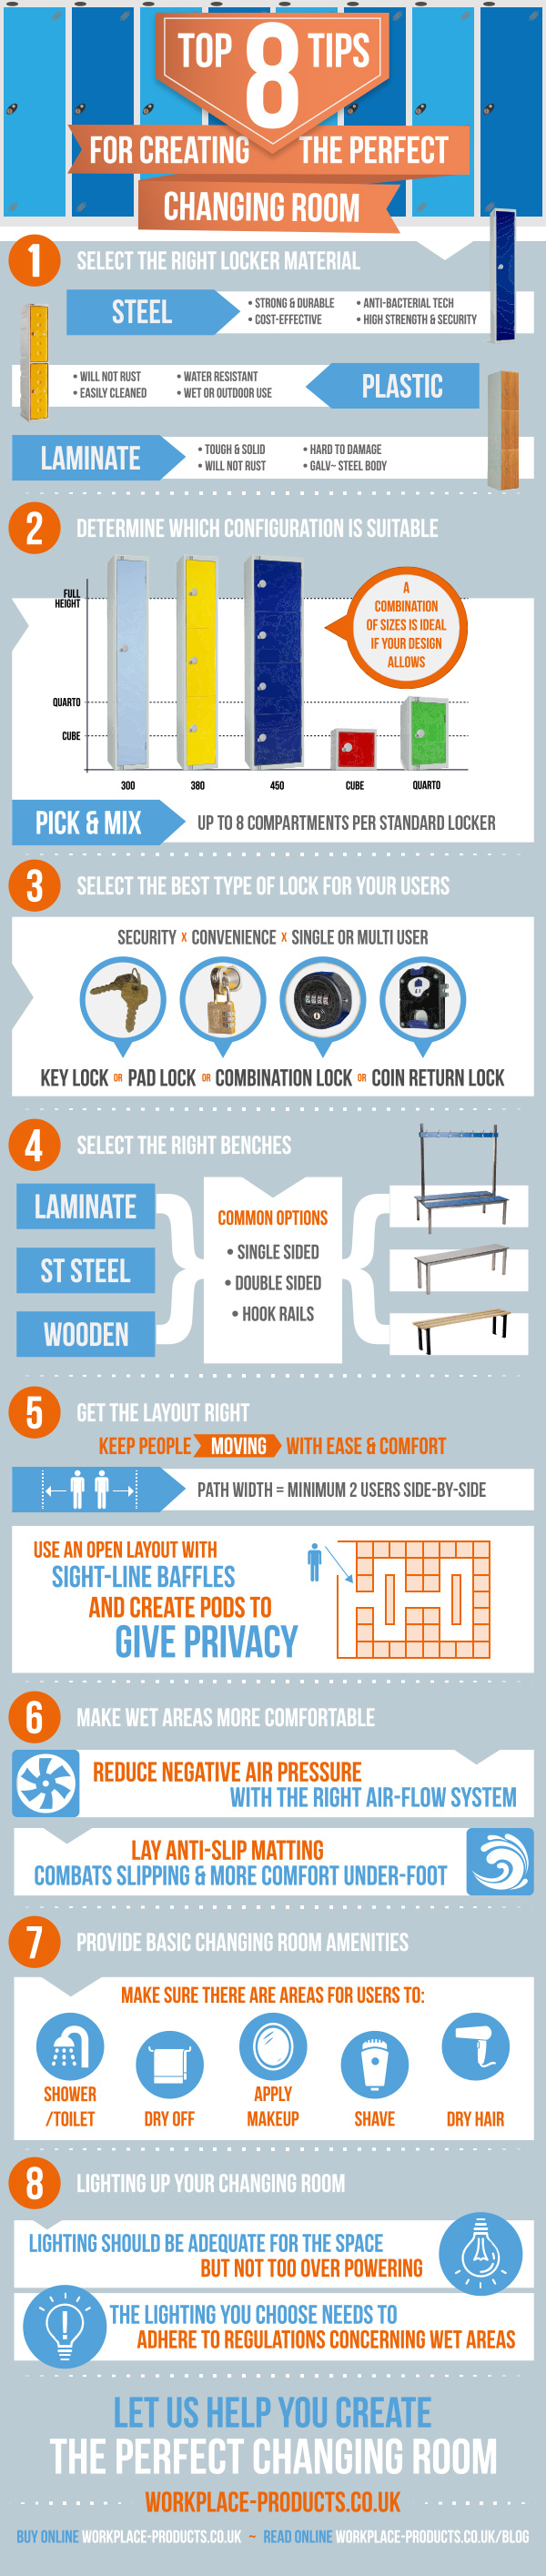 8 Tips for Creating The Perfect Changing Room [Infographic]